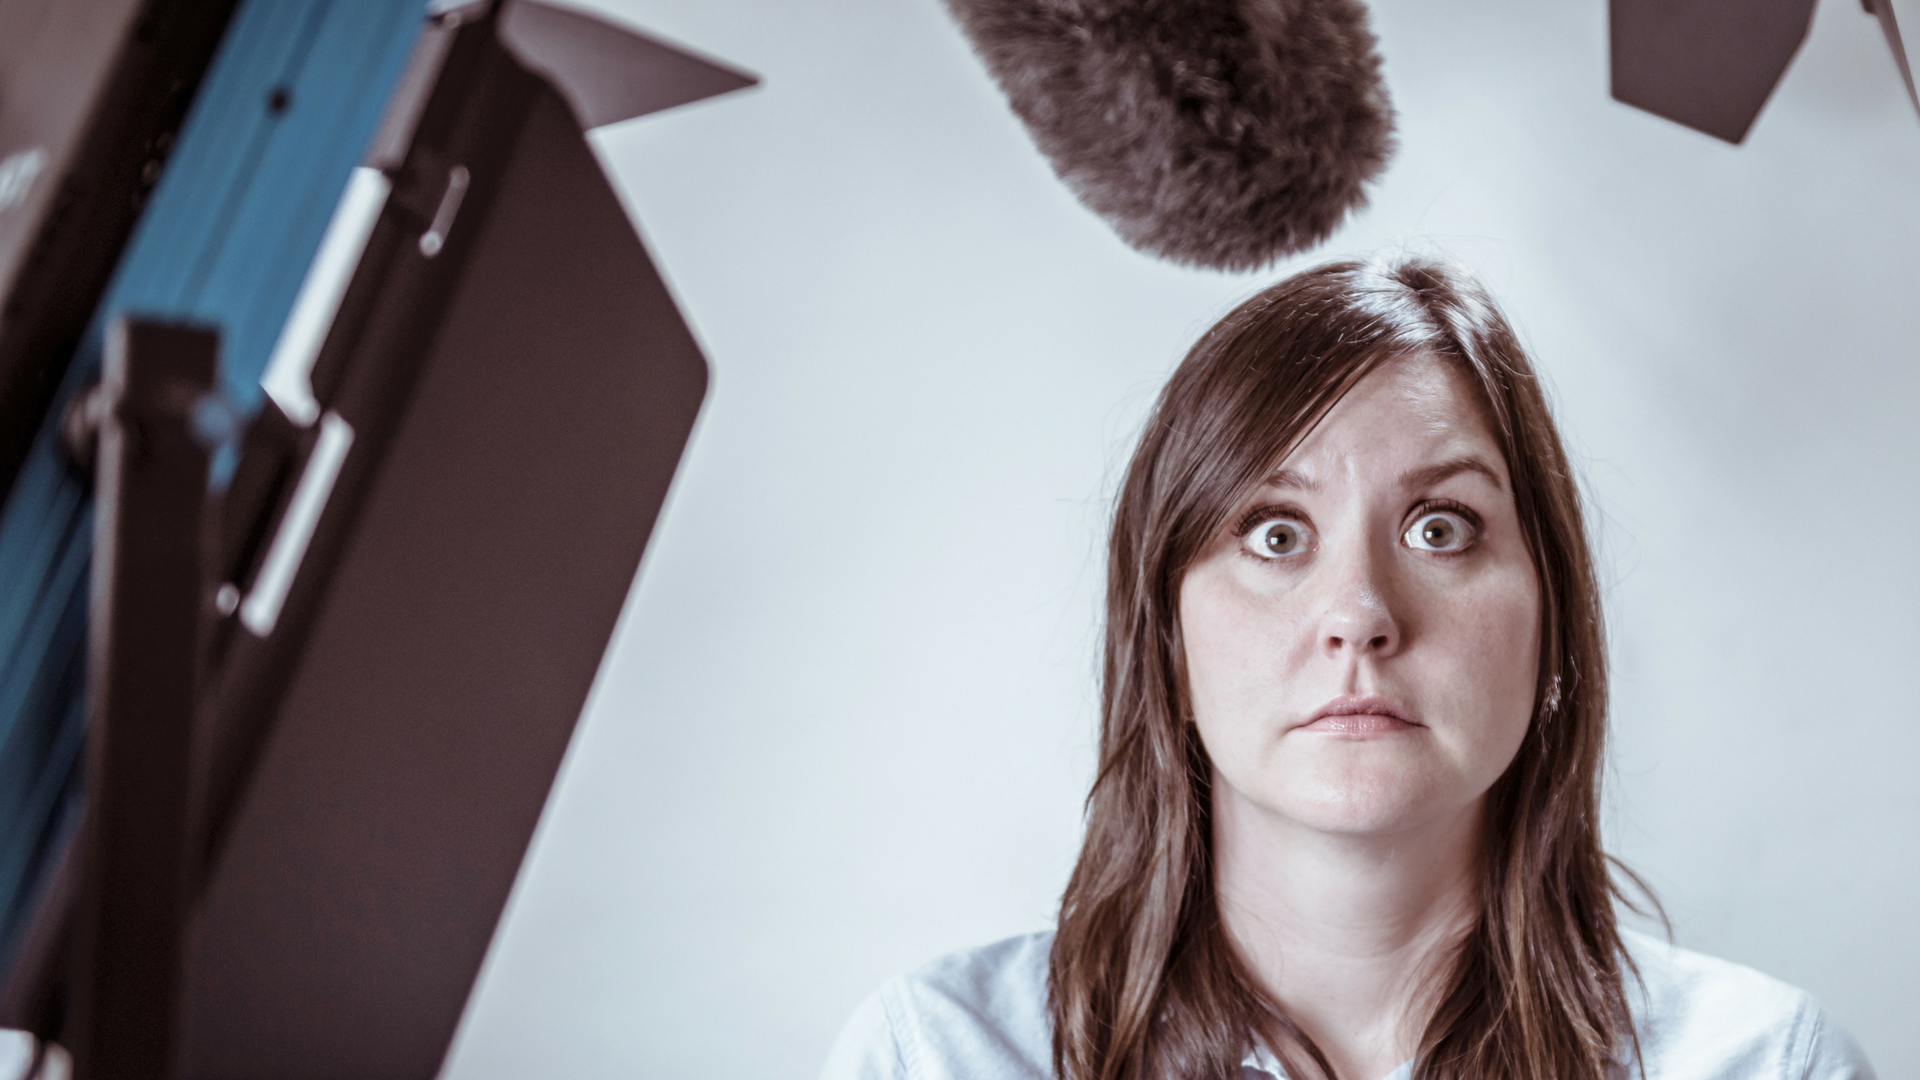 Camera shy? Here's how to banish your fear of being on camera